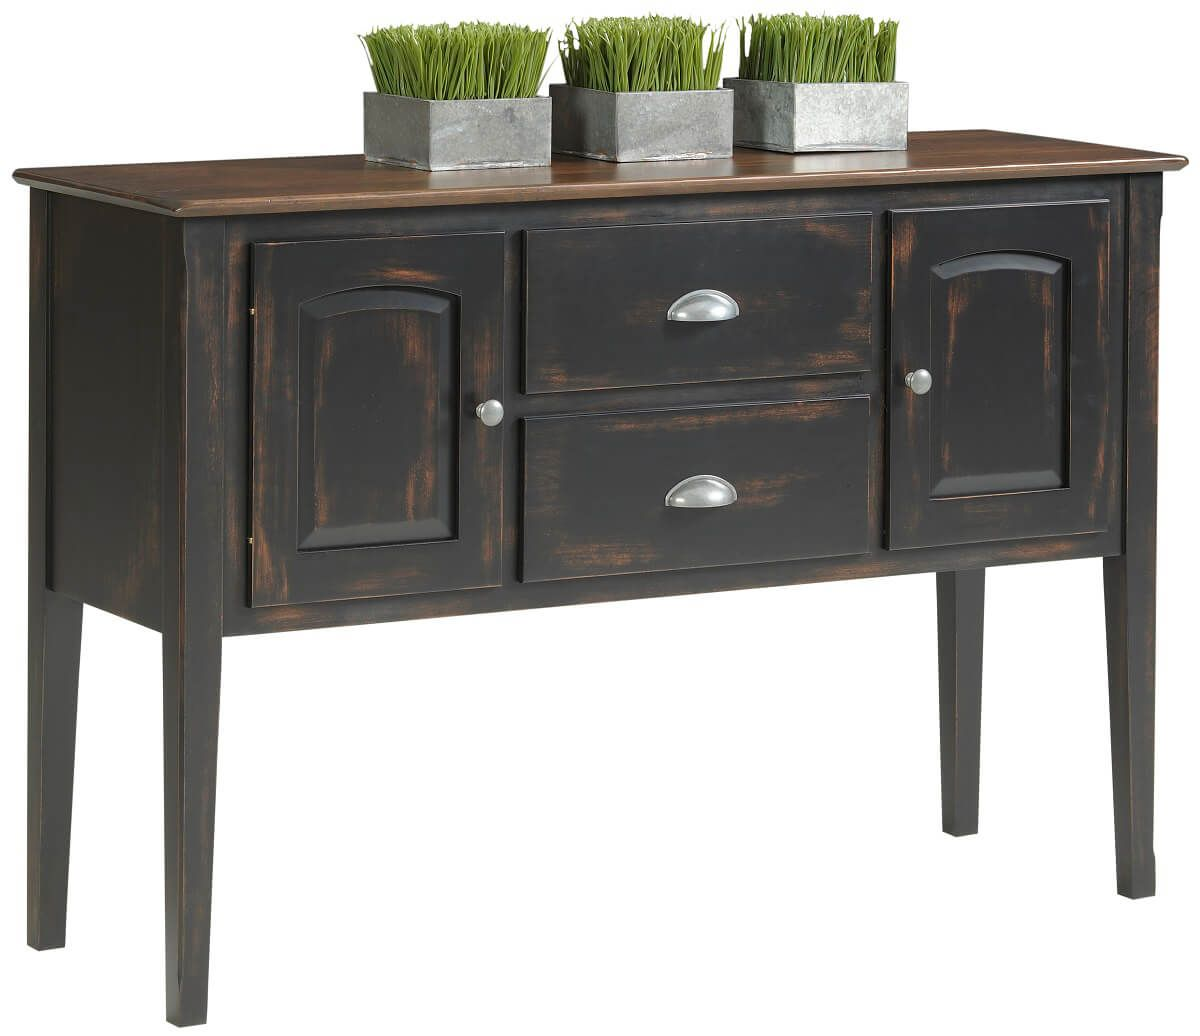 Shown with specialty painted finish